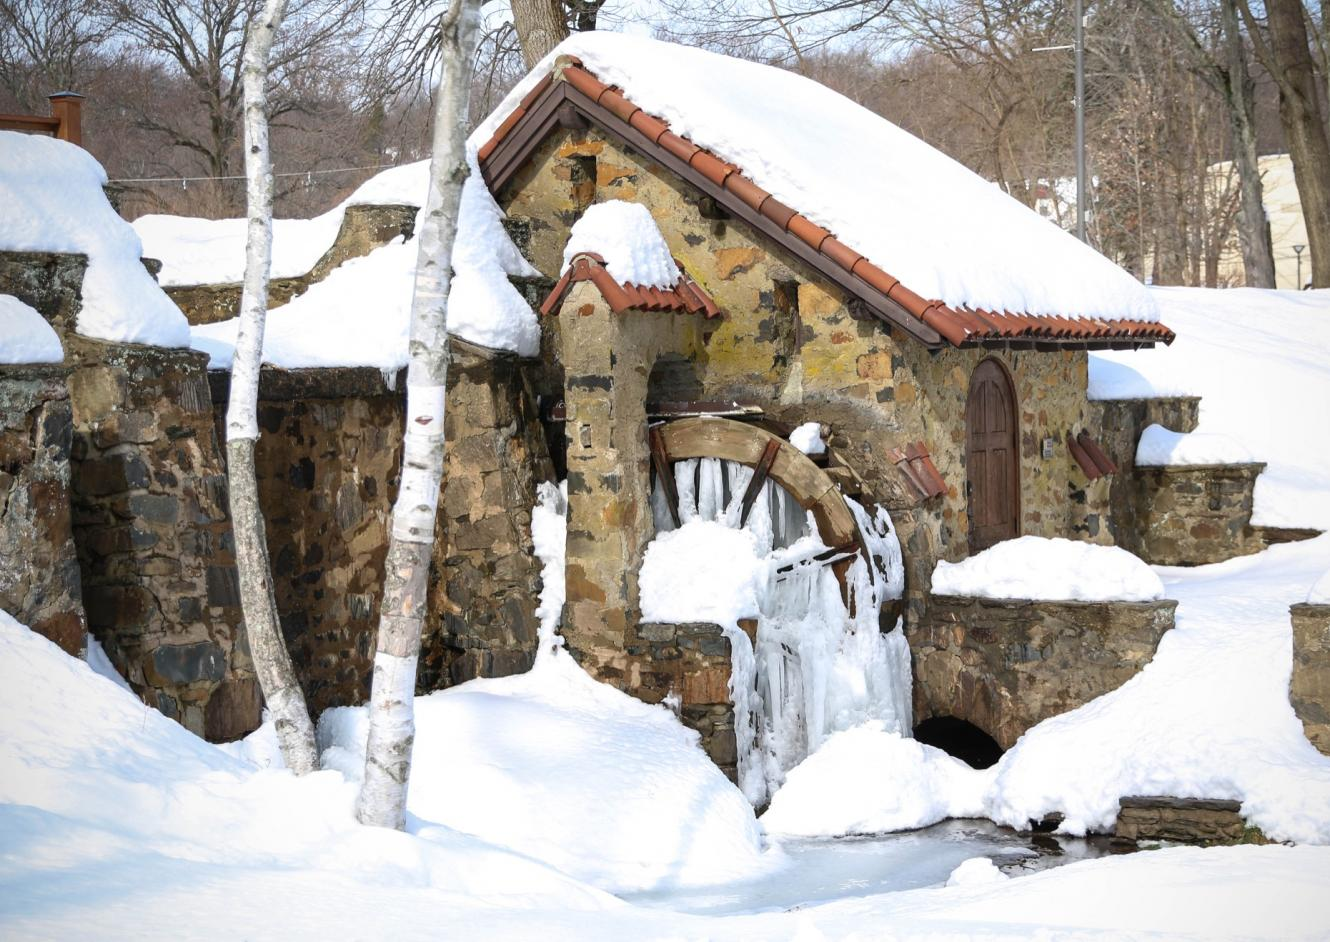 Waterwheel in Snow